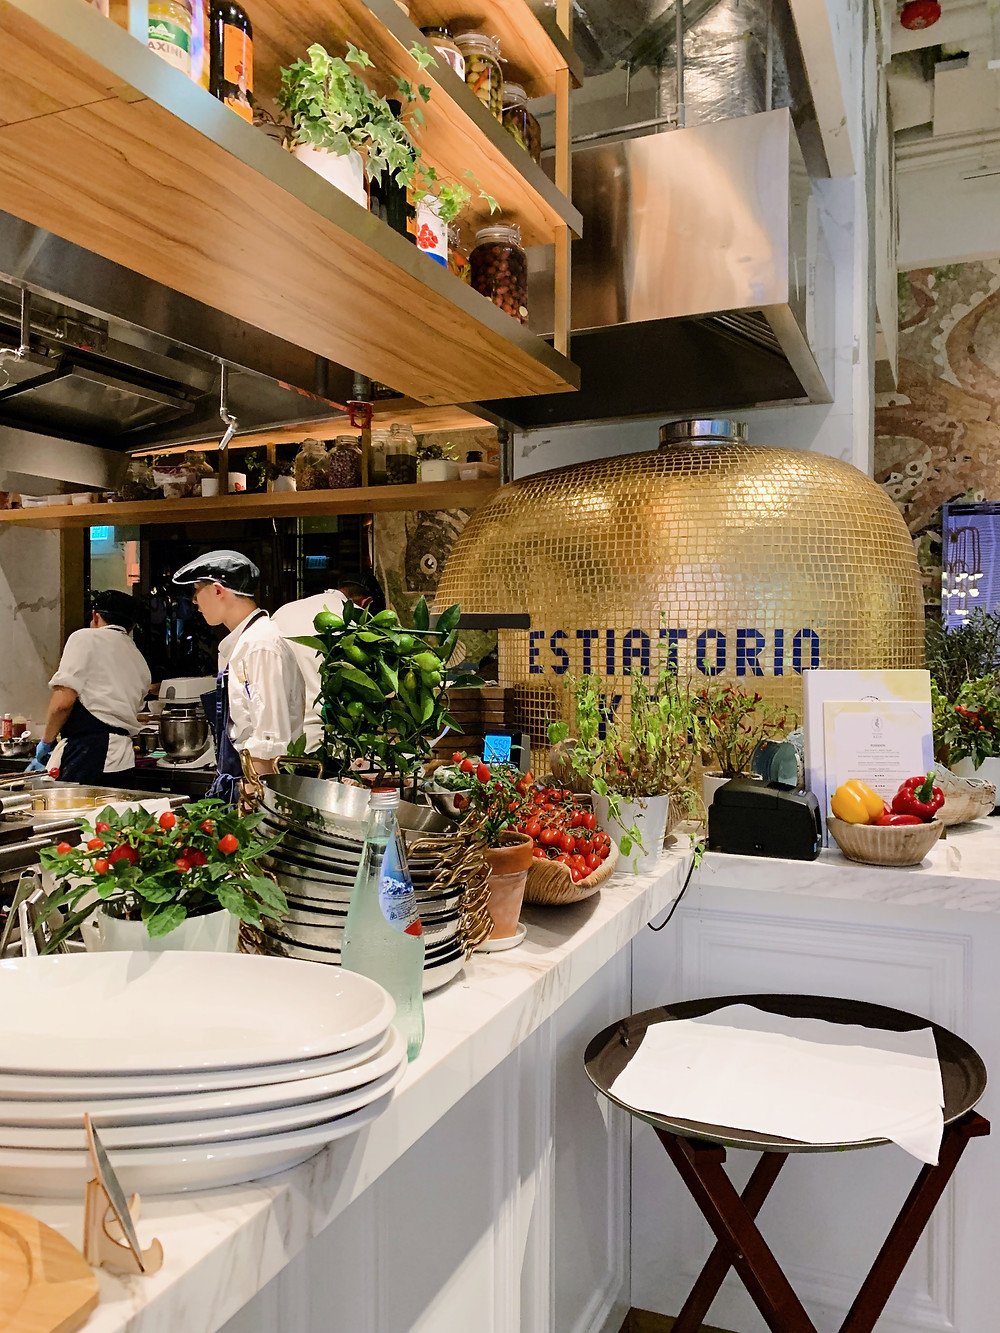 Greek restaurant Estiatorio KEIA in Hong Kong